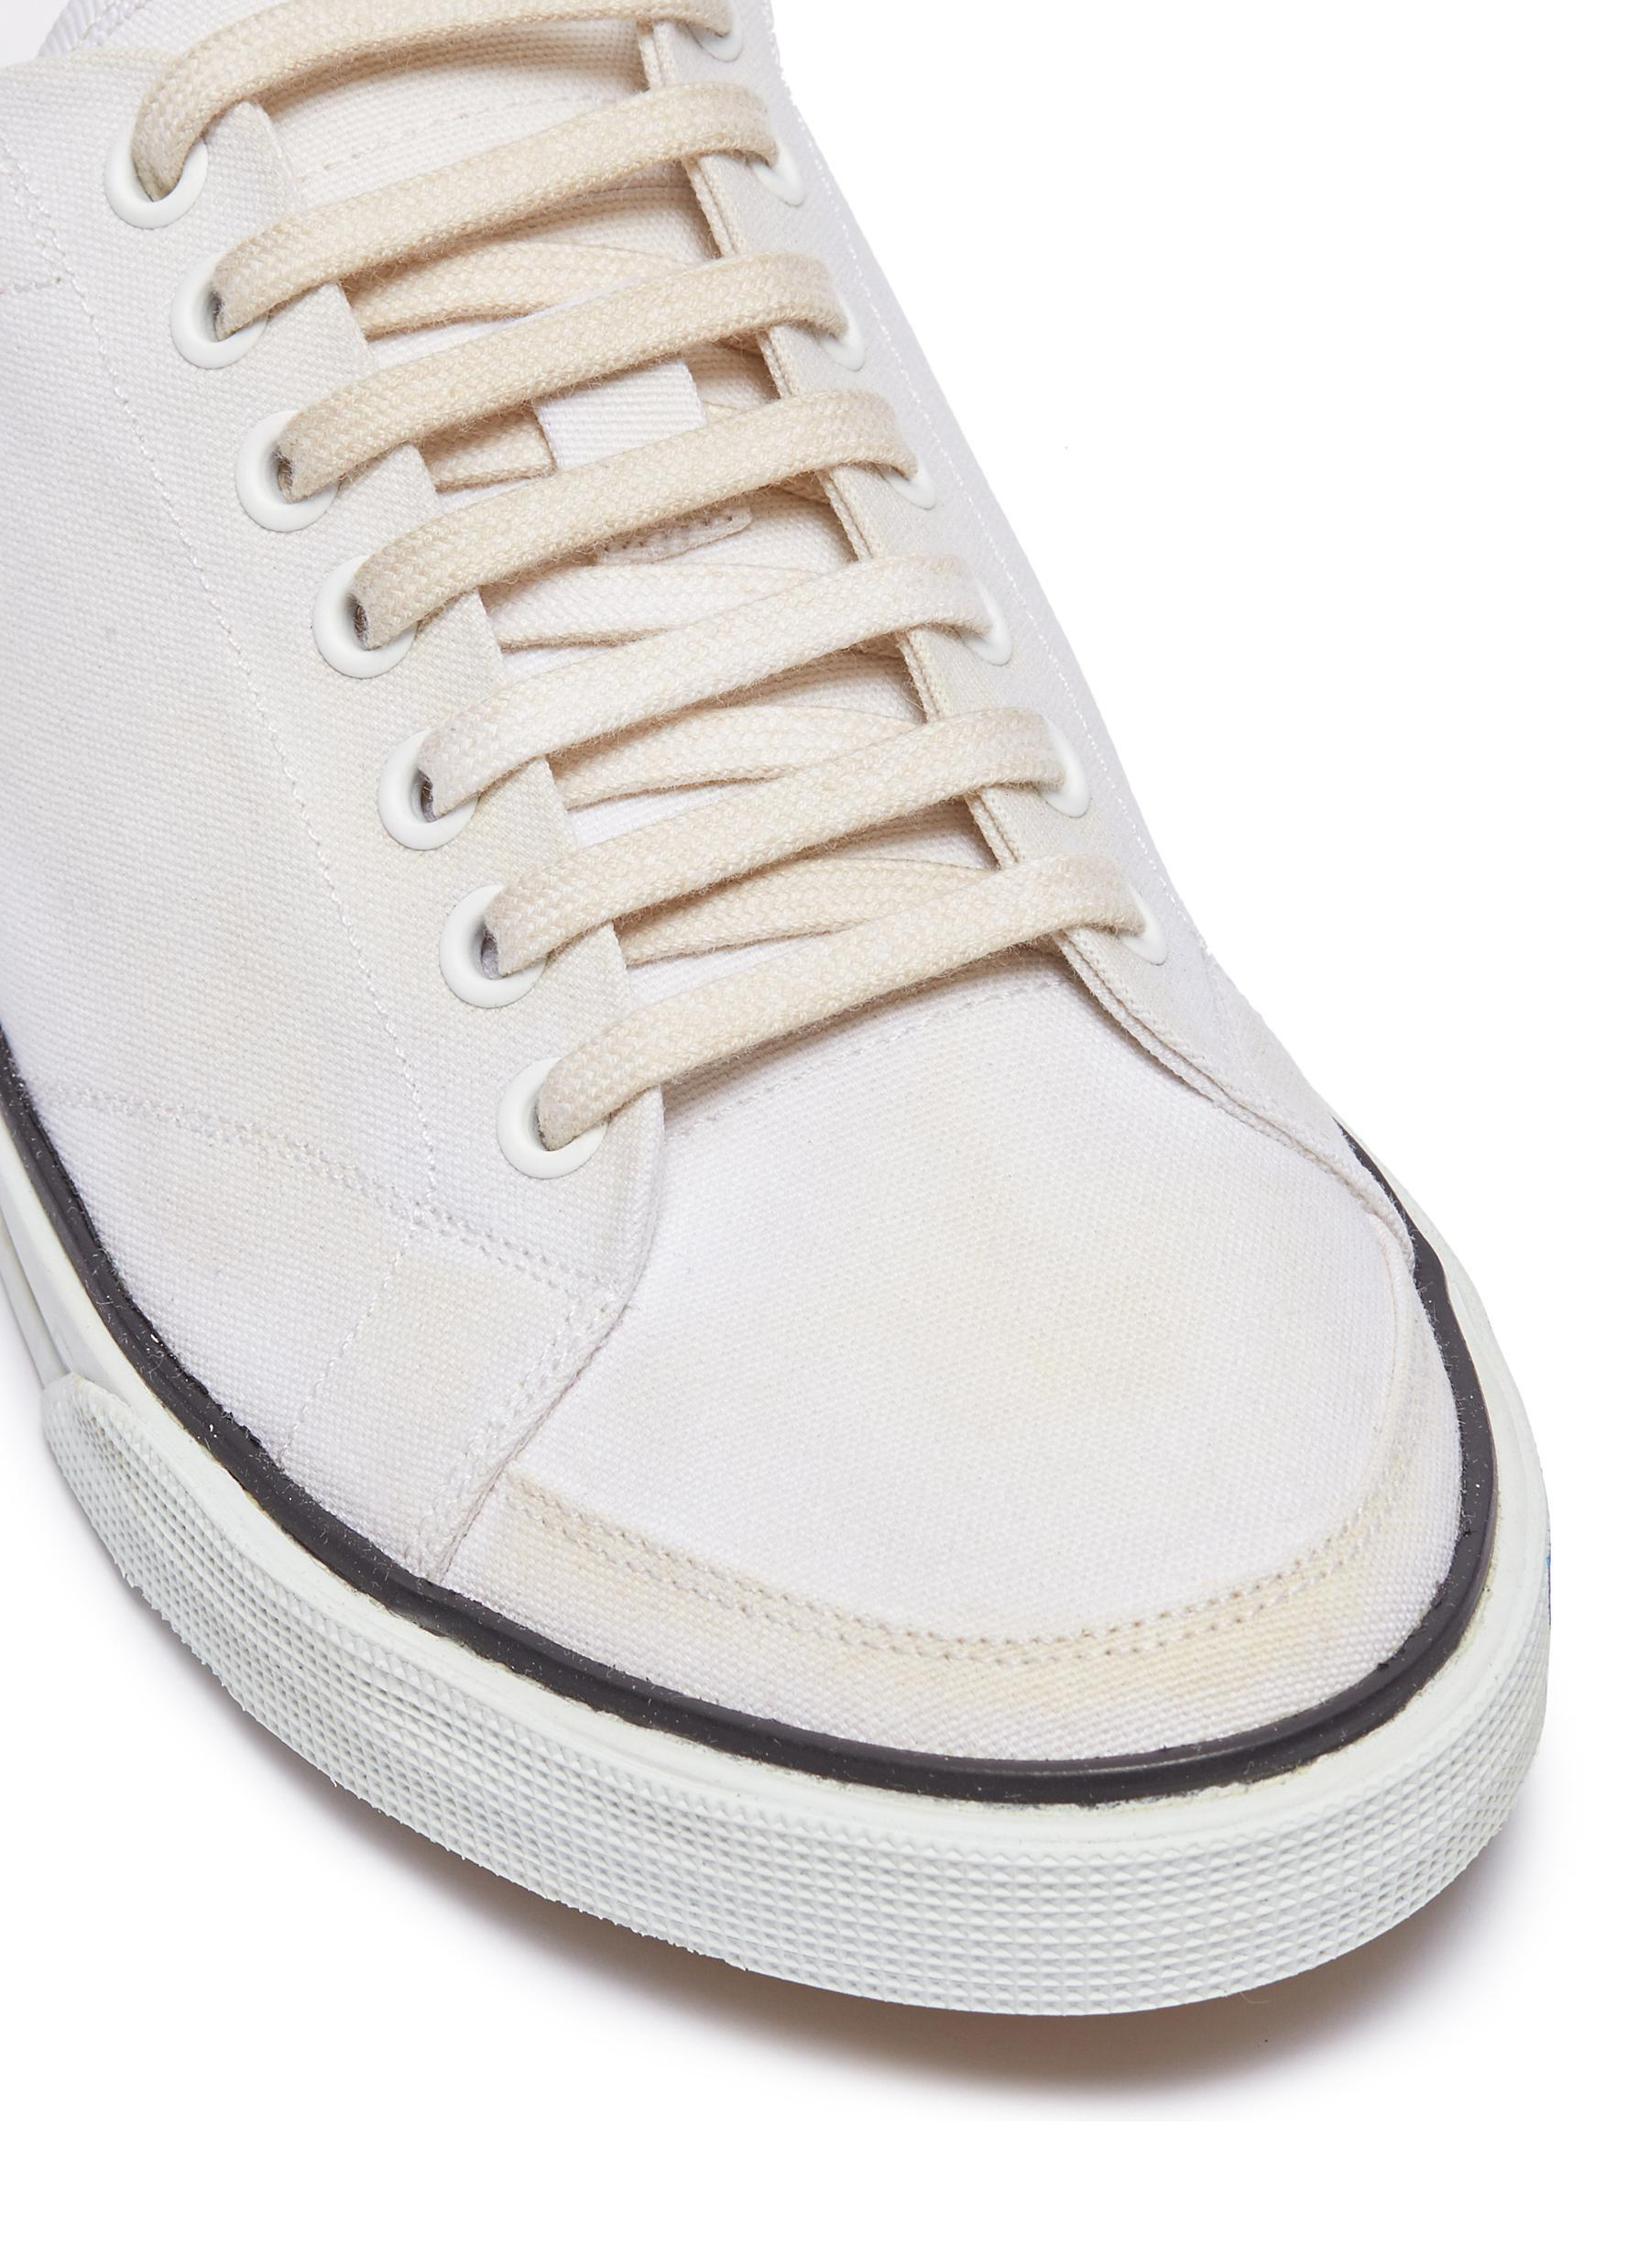 Midsole Canvas Sneakers in White